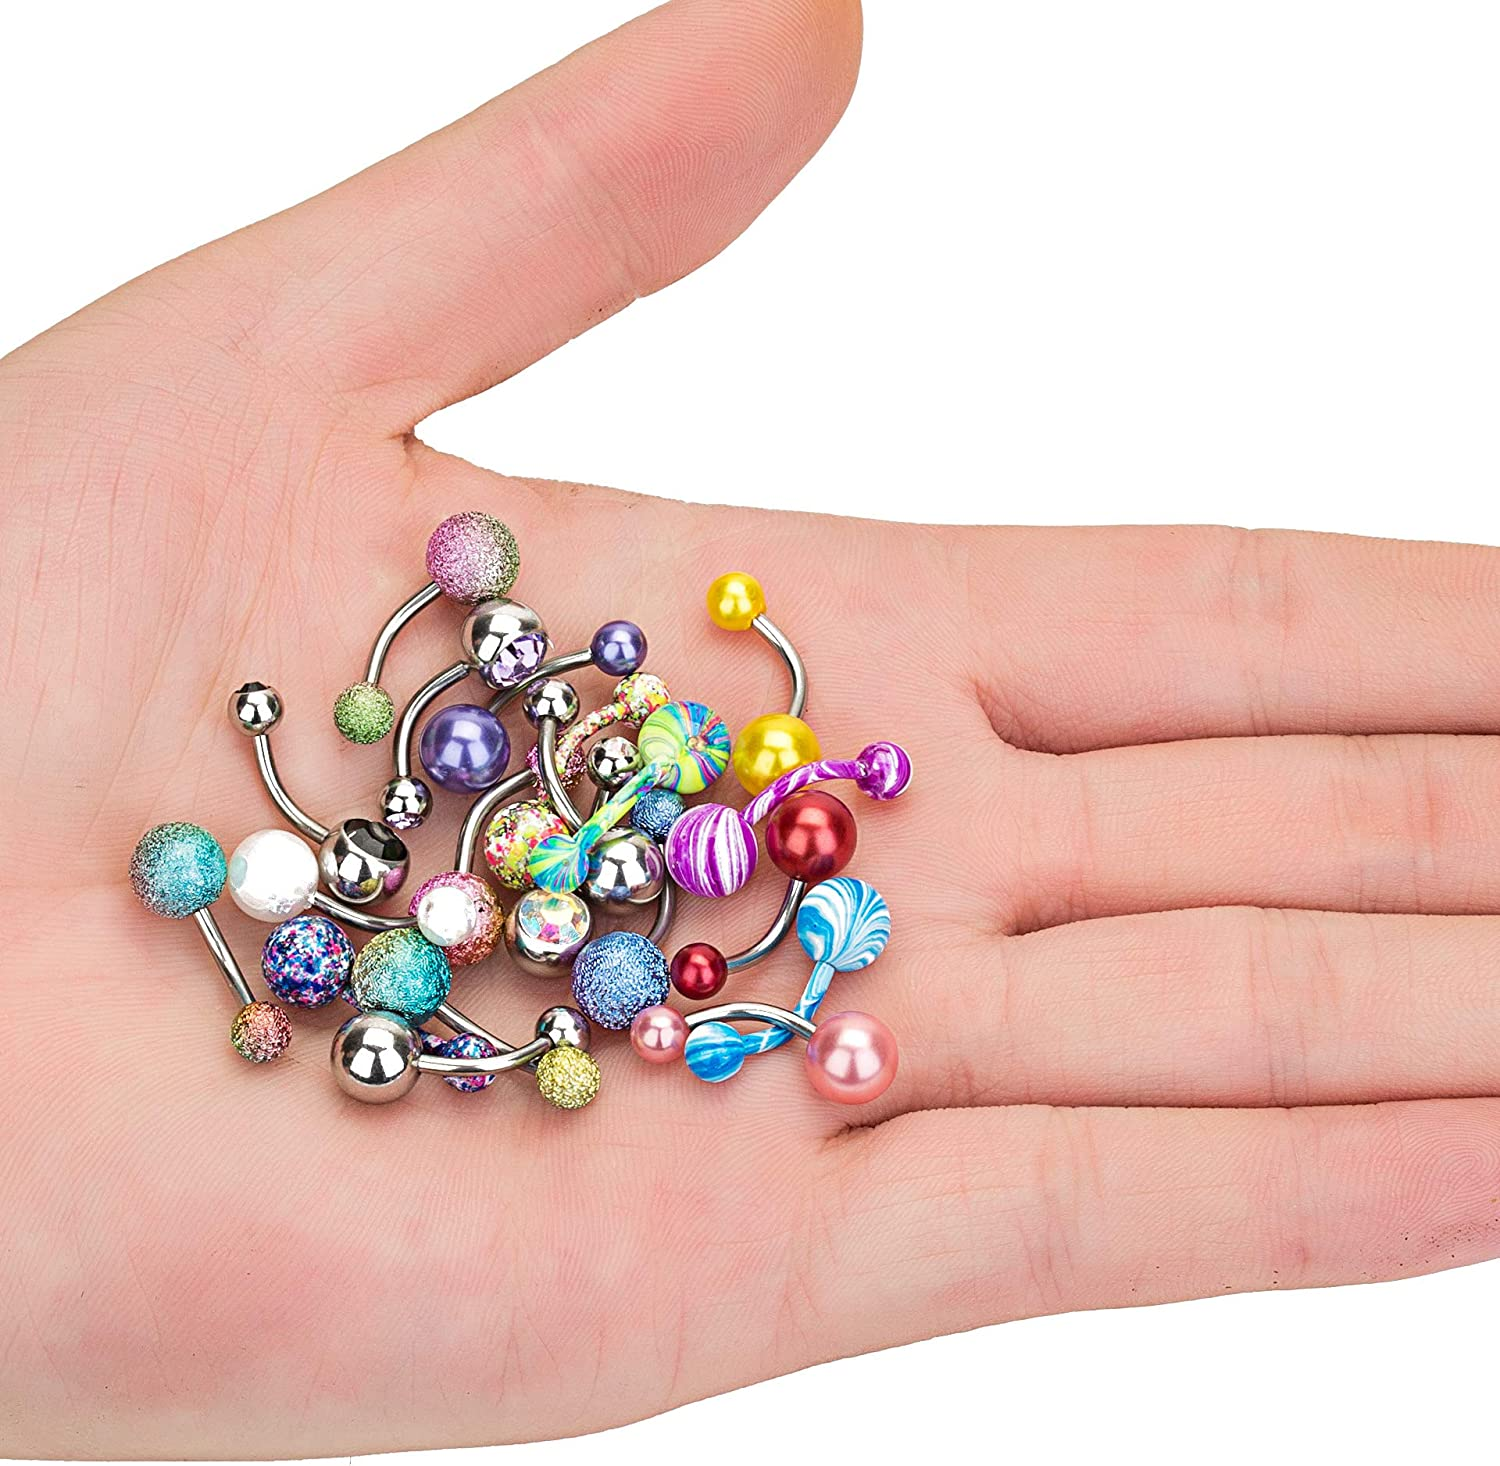 Masedy 20Pcs Stainless Steel Belly Button Rings for Women Girls Curved Navel Barbell Rings CZ Body Piercing Jewelry